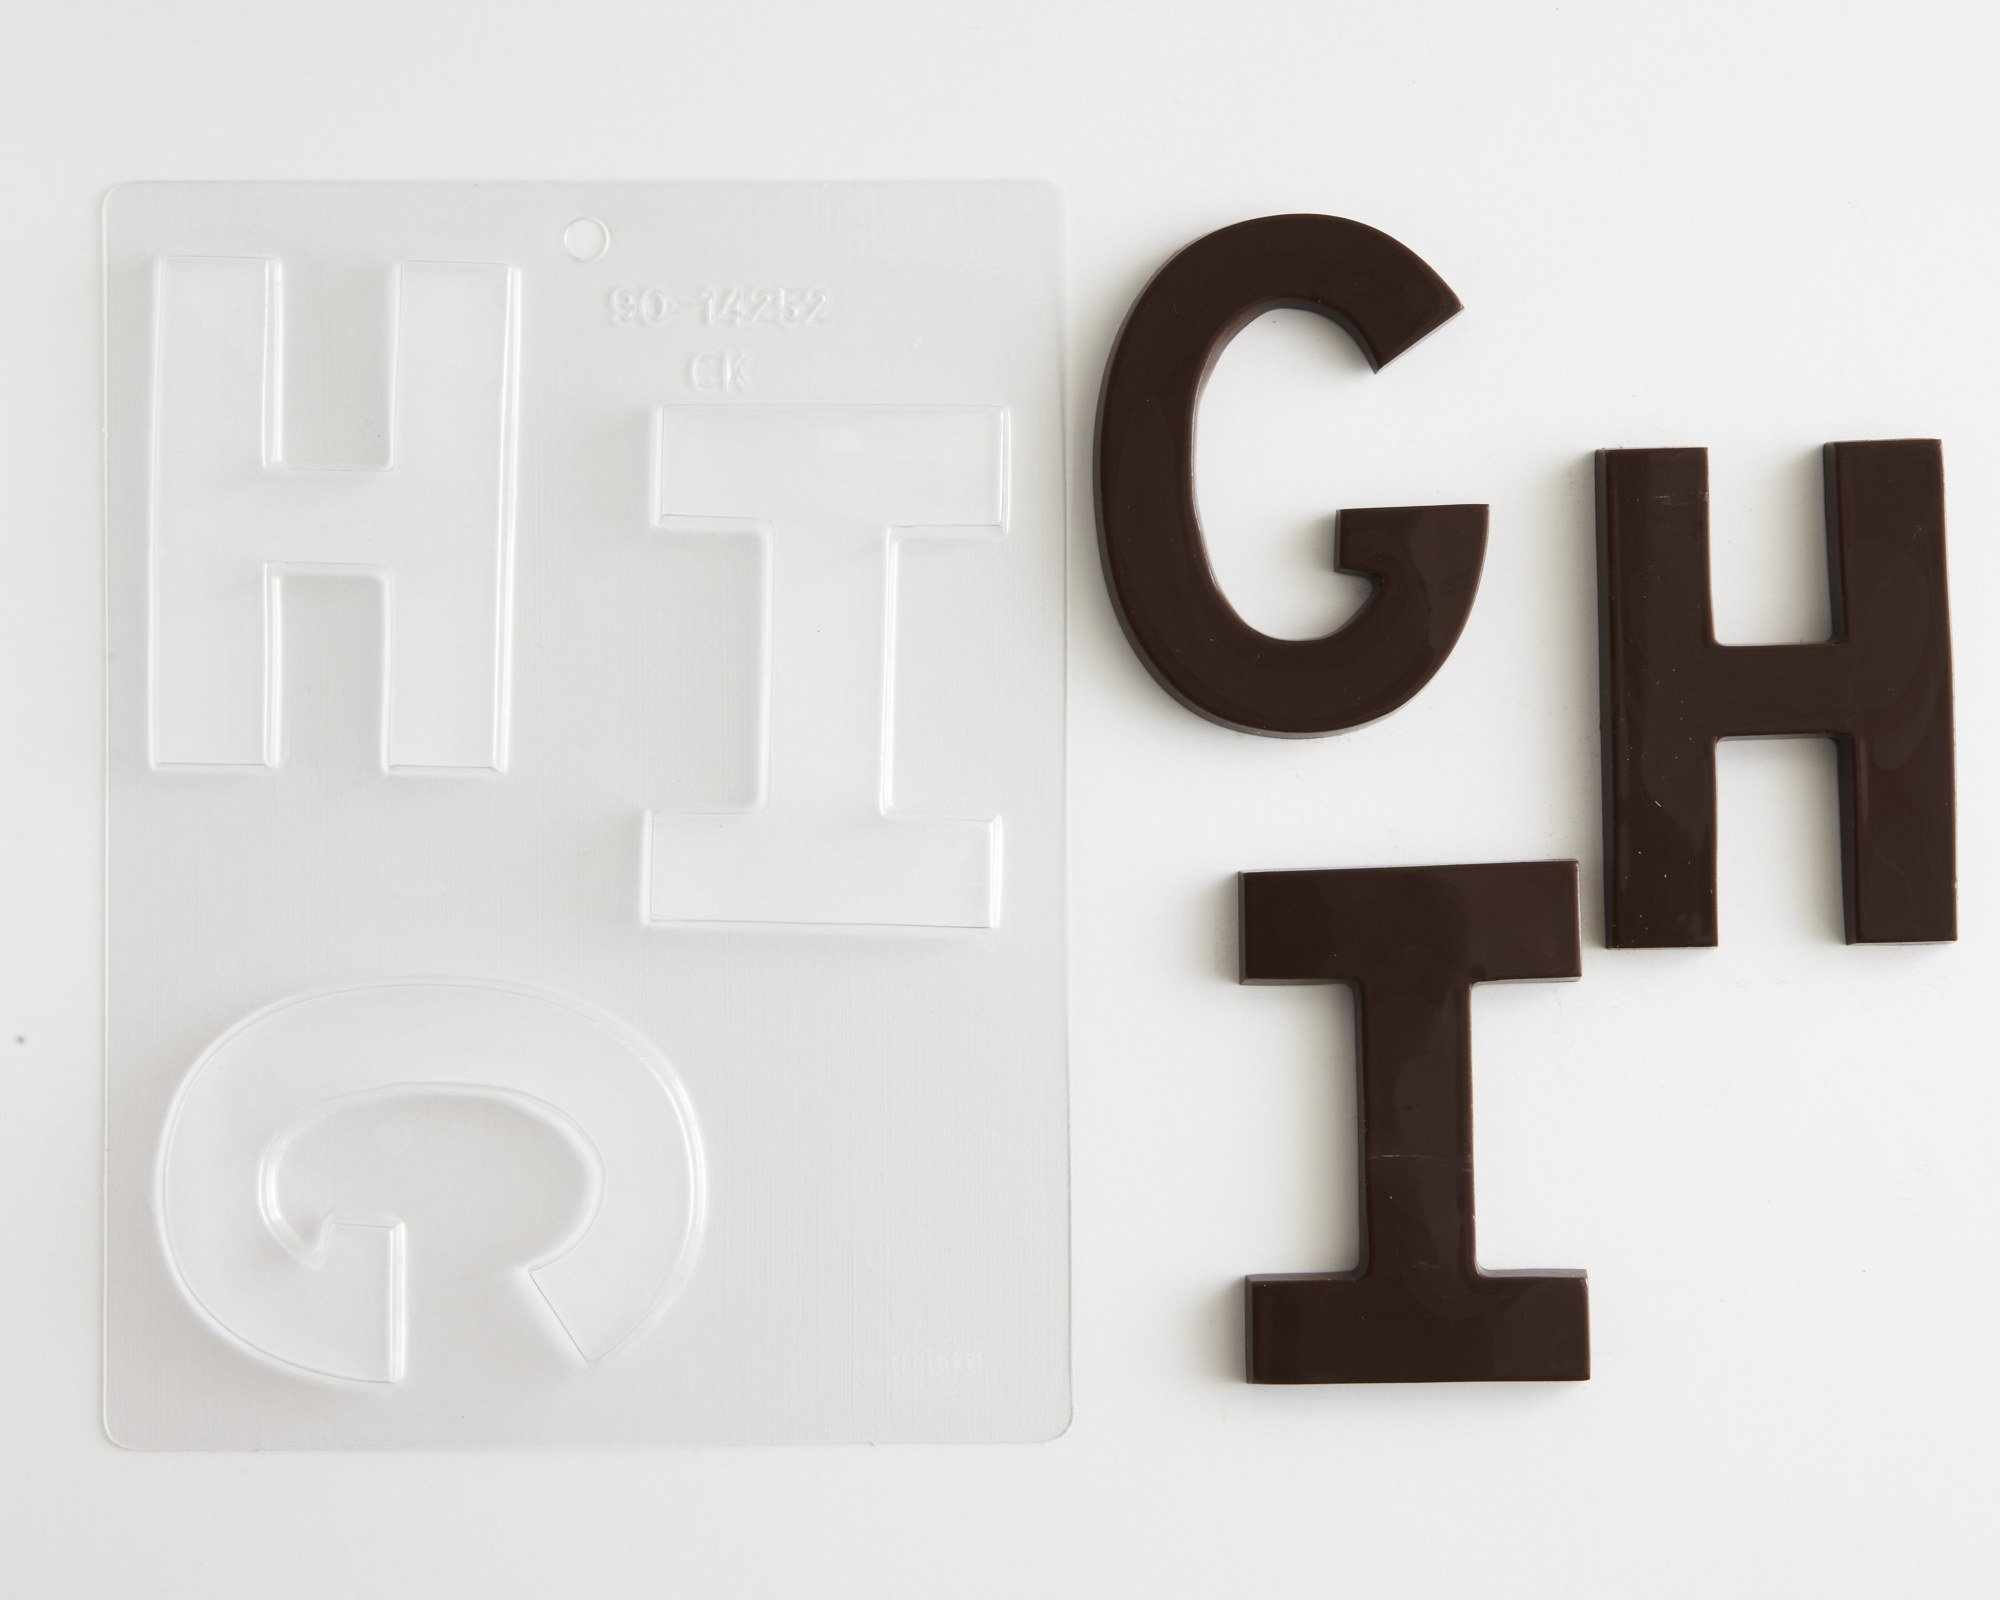 Large Block Letters Chocolate Candy Molds - A - Z (8) 4'' Letter Alphabet Set (Cakegirls Chocolate Mold Instructions Included) by Cakegirls (Image #3)